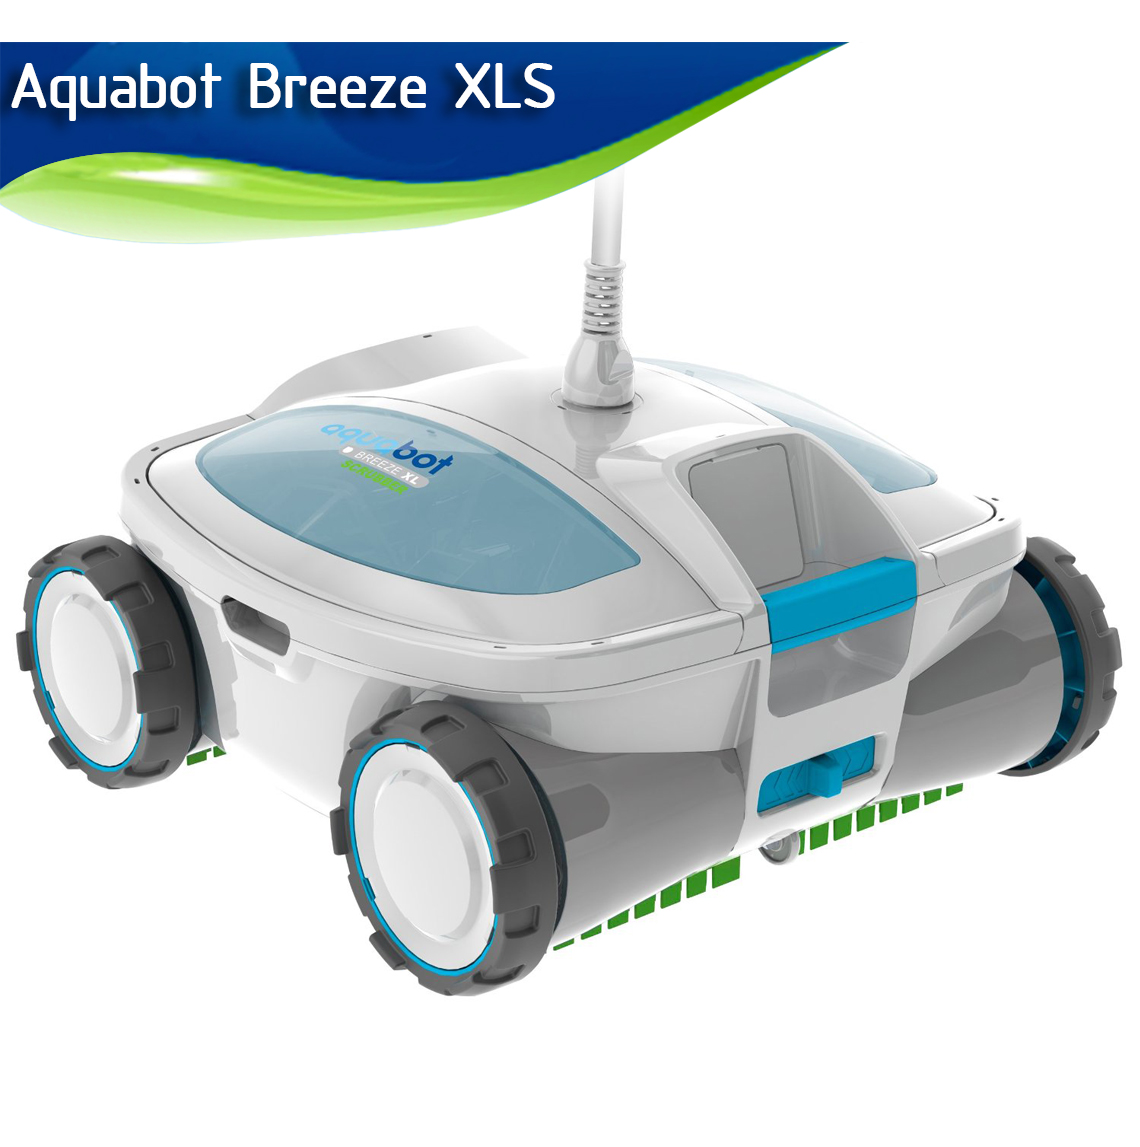 Aquabot Breeze Xls Review Best Robotic Pool Cleaners